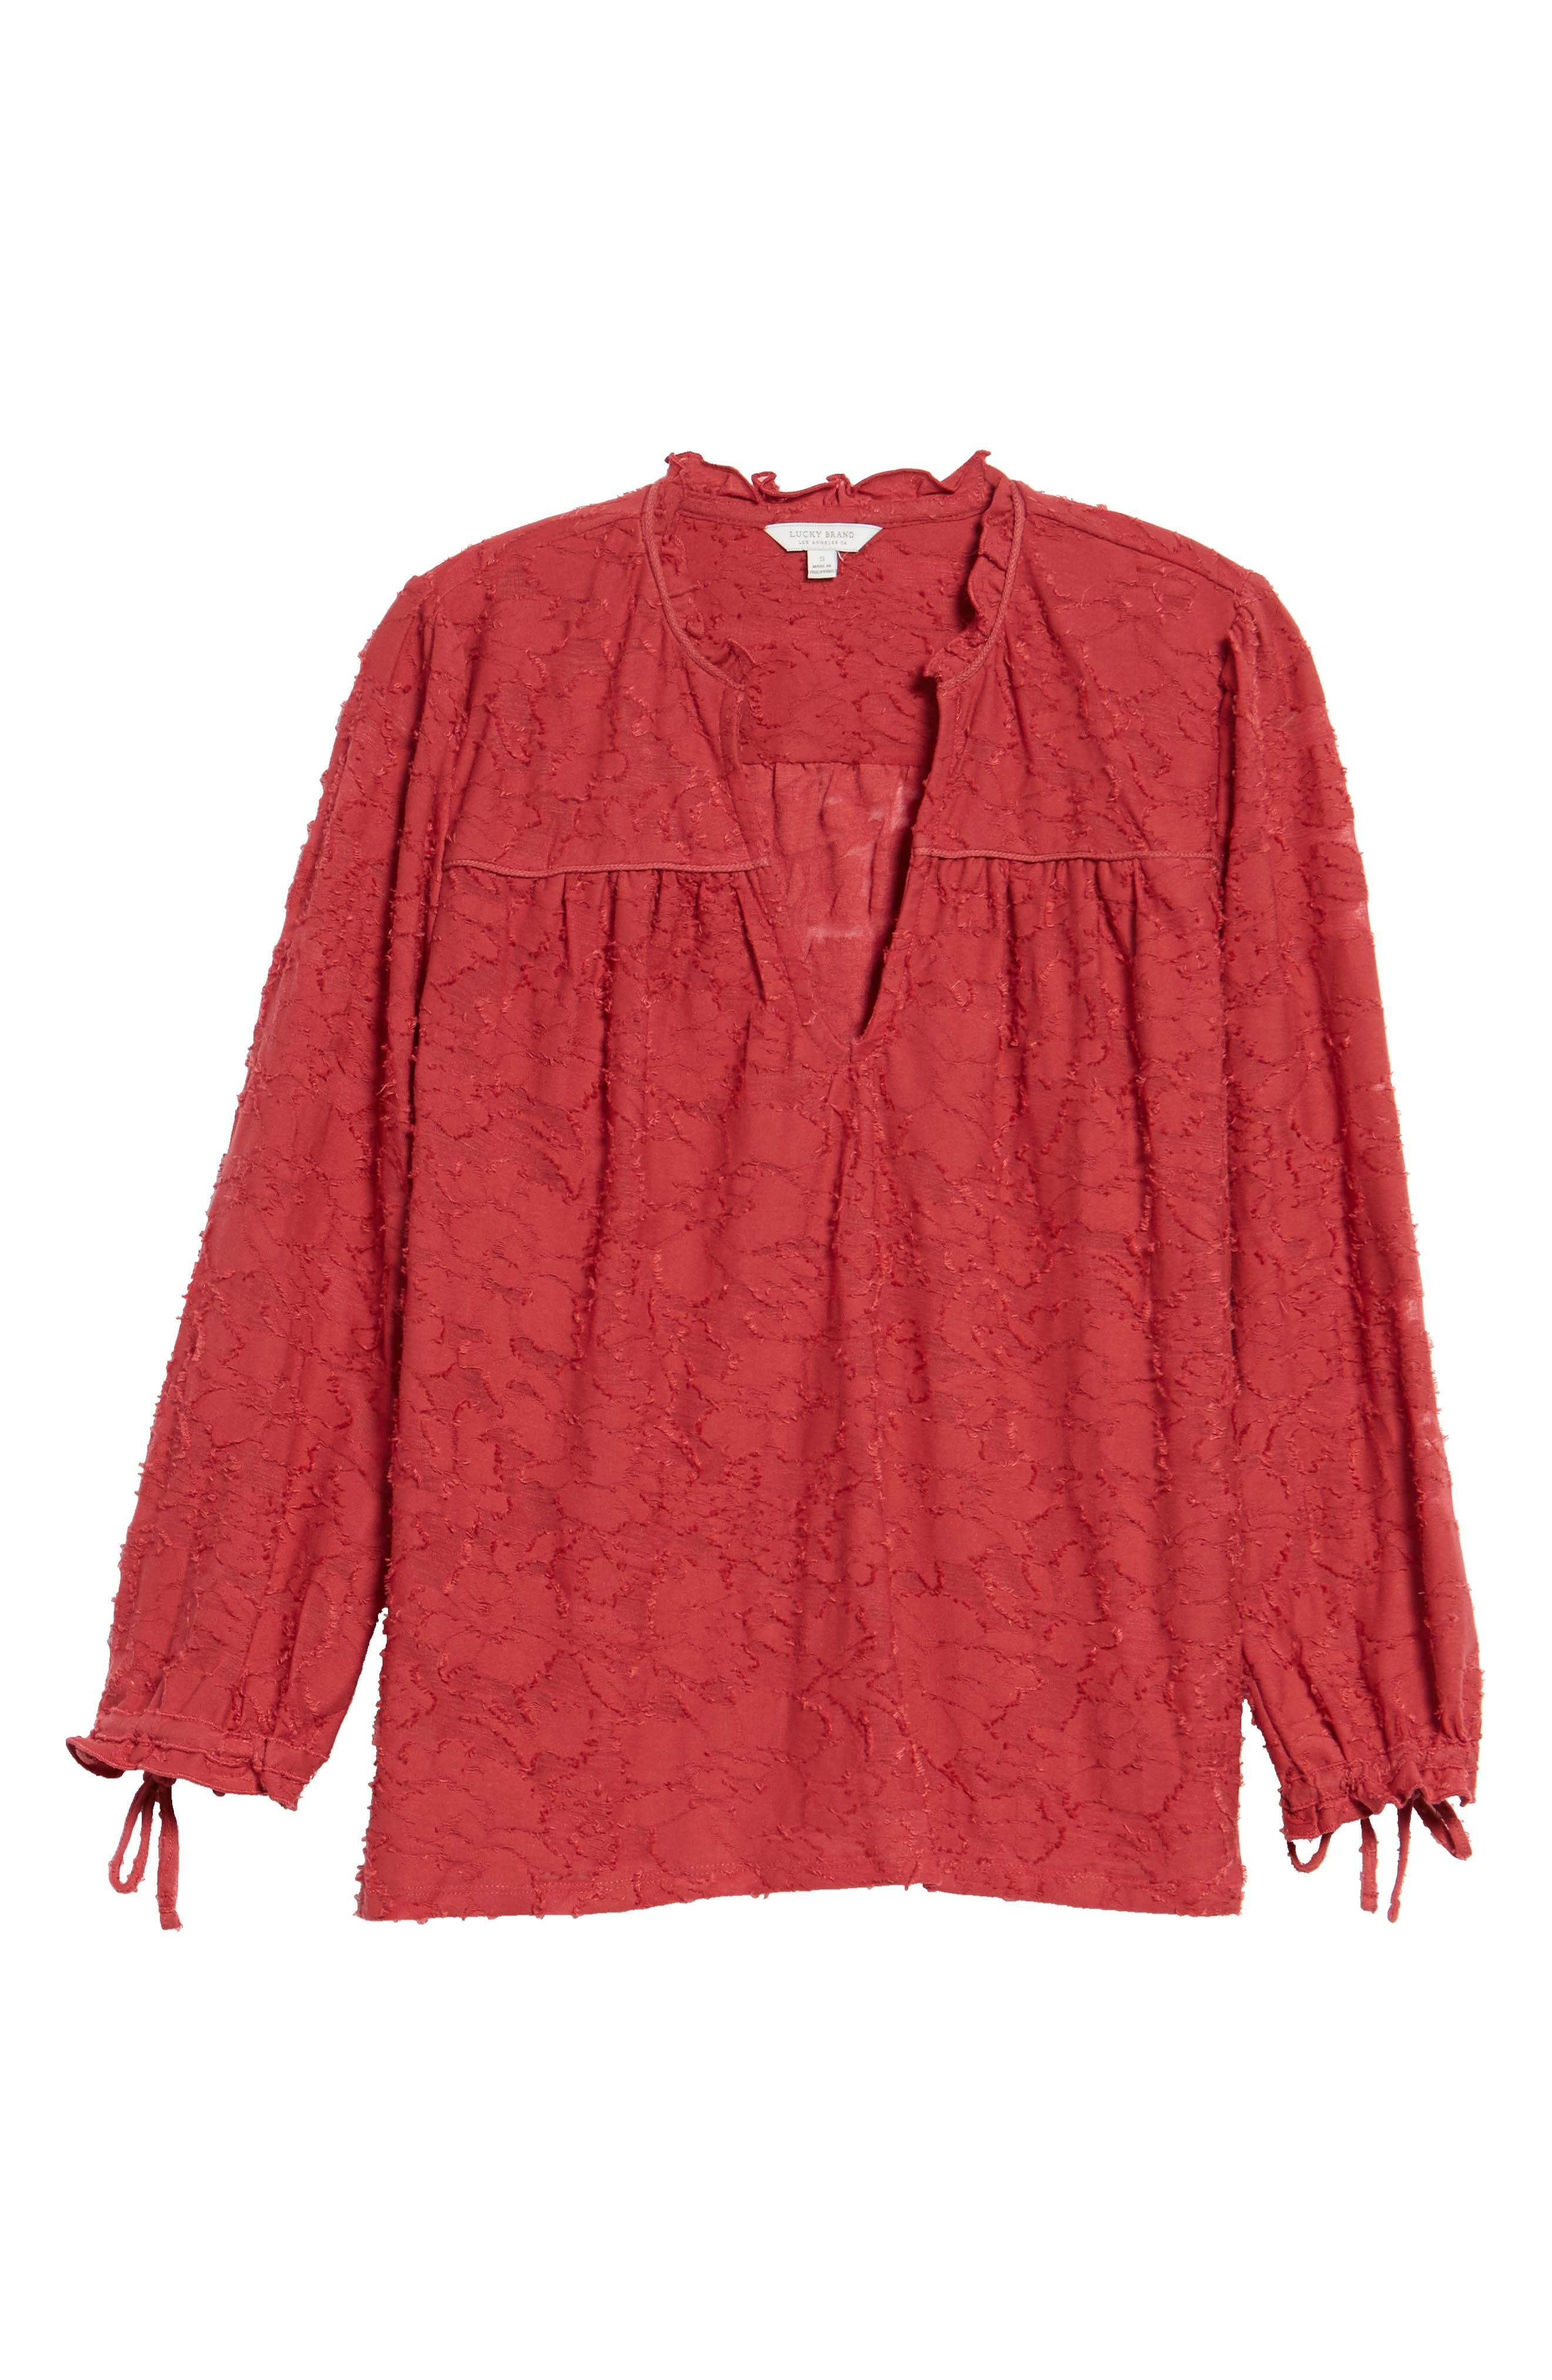 Alternate Image 1 Selected - Lucky Brand Floral Clipped Jacquard Top